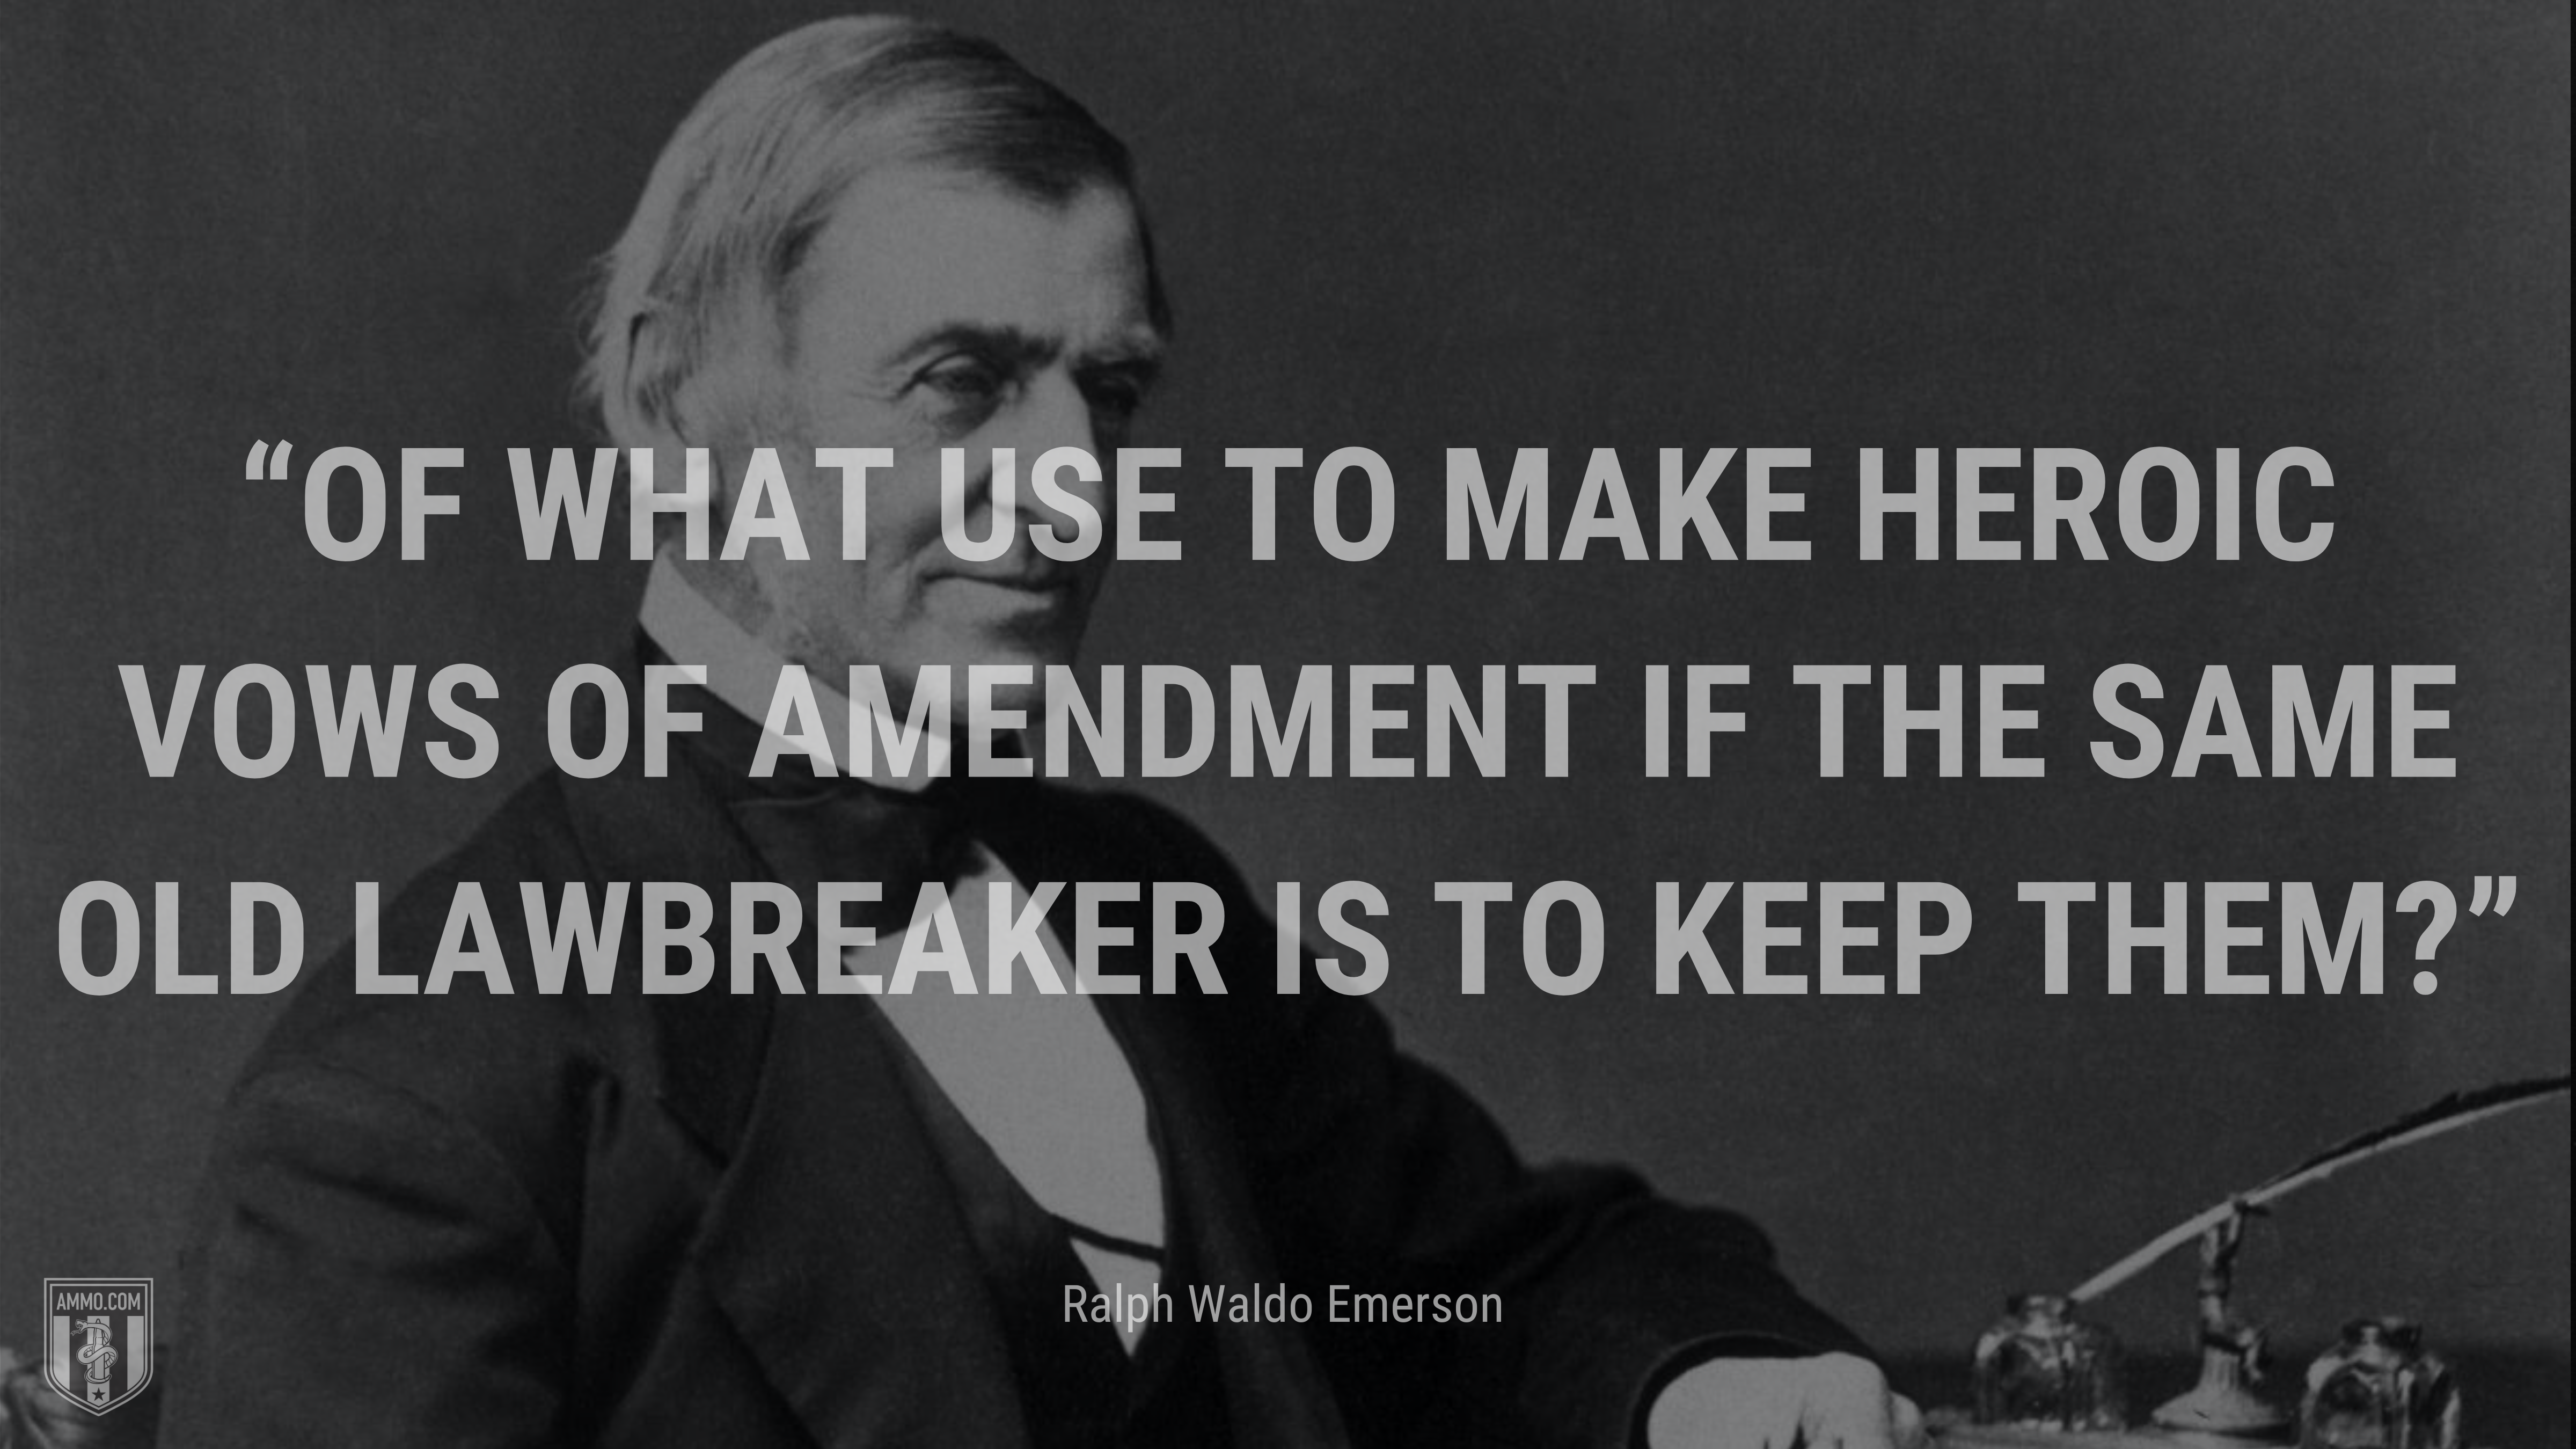 """""""Of what use to make heroic vows of amendment if the same old lawbreaker is to keep them?"""" - Ralph Waldo Emerson"""